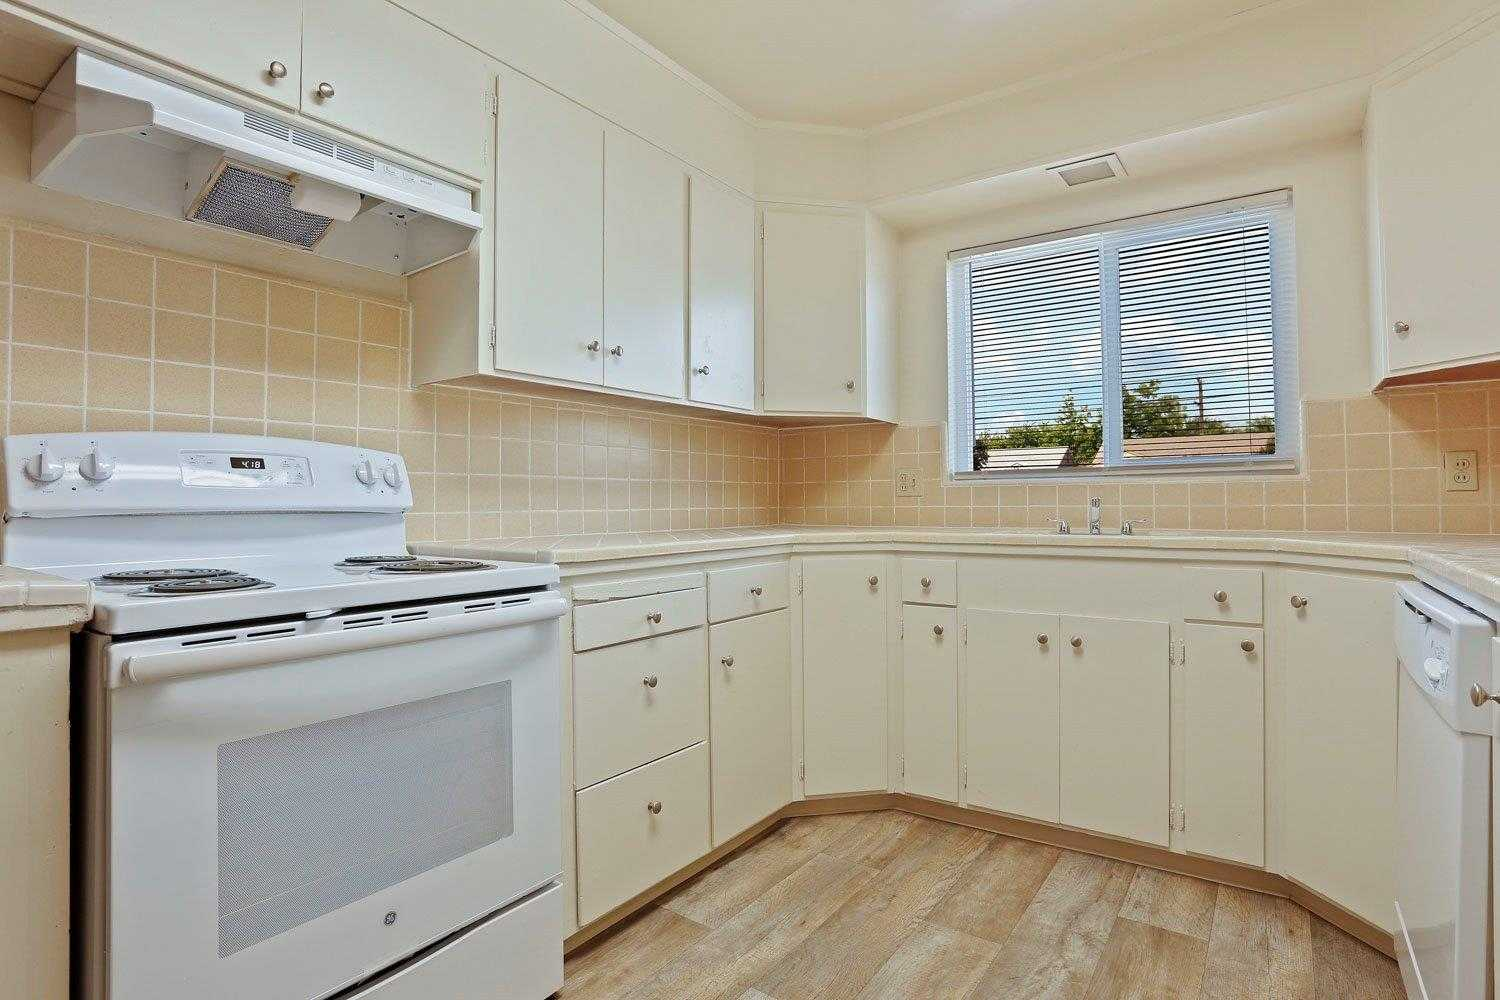 $249,000 - 2Br/1Ba -  for Sale in West Lane Heights, Stockton